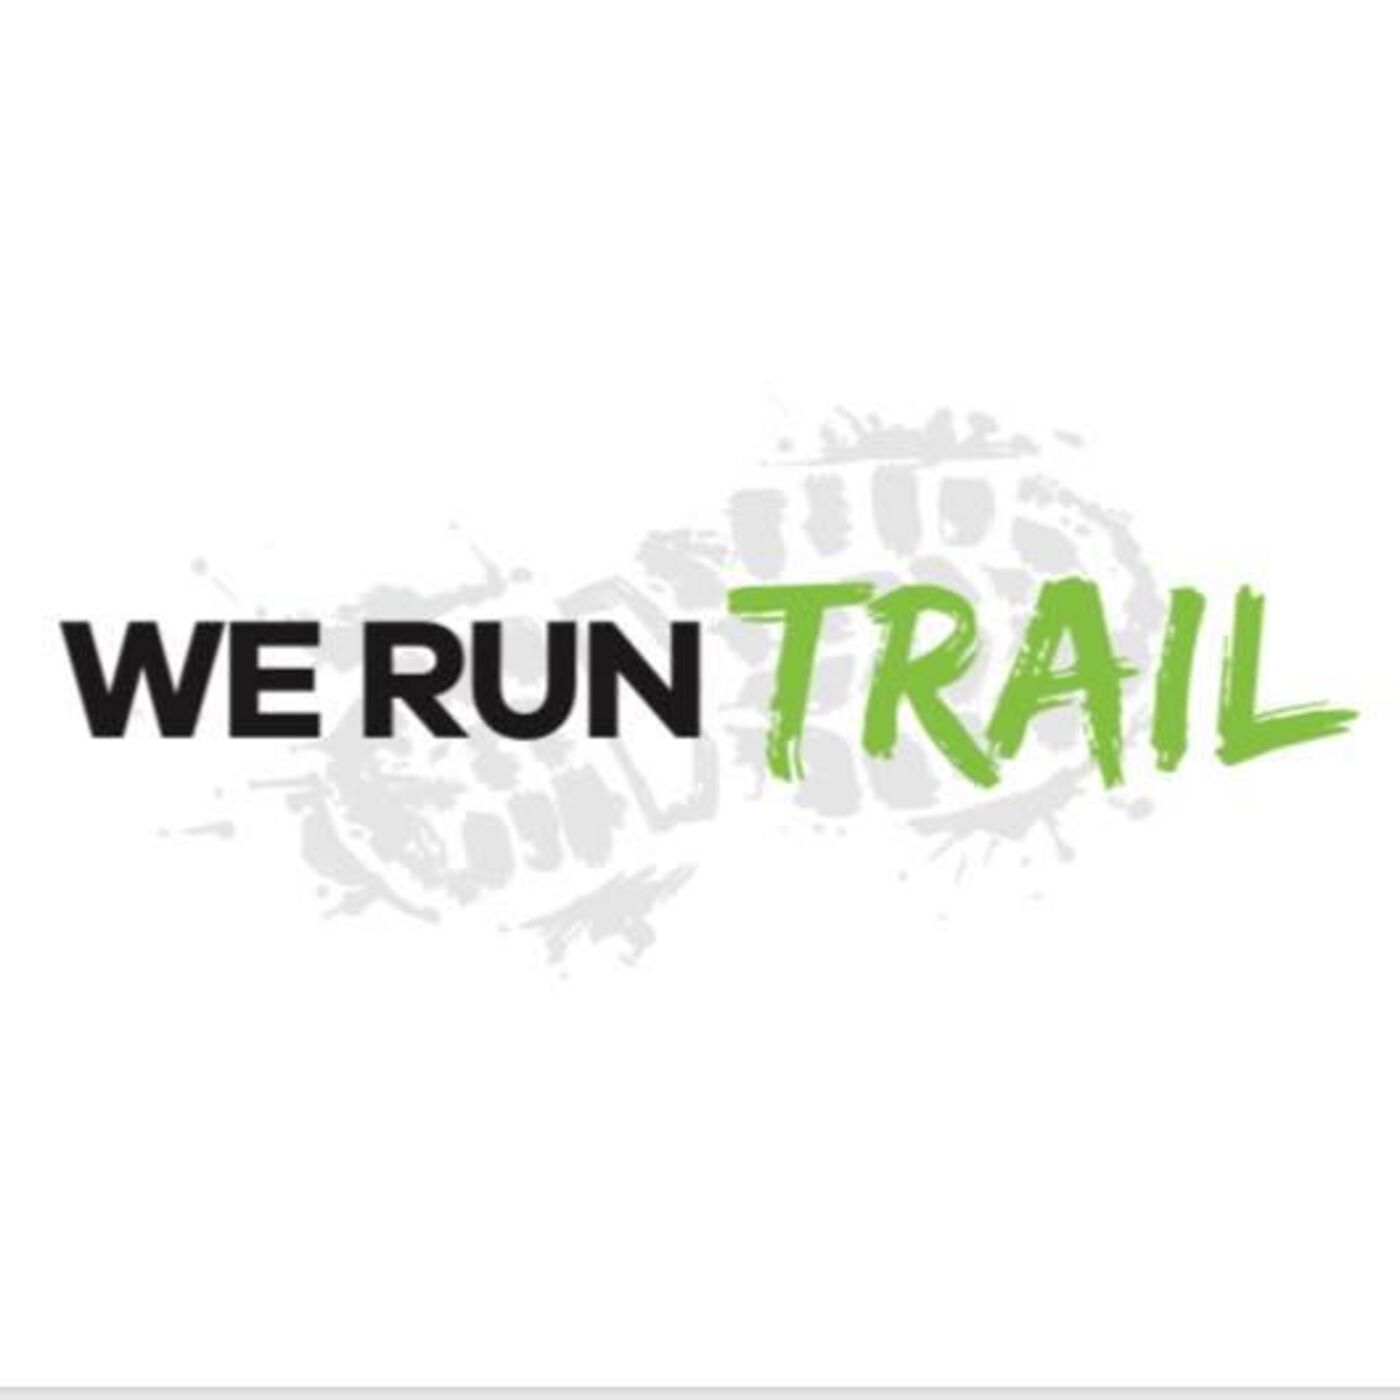 We Run Trail - And we are off!